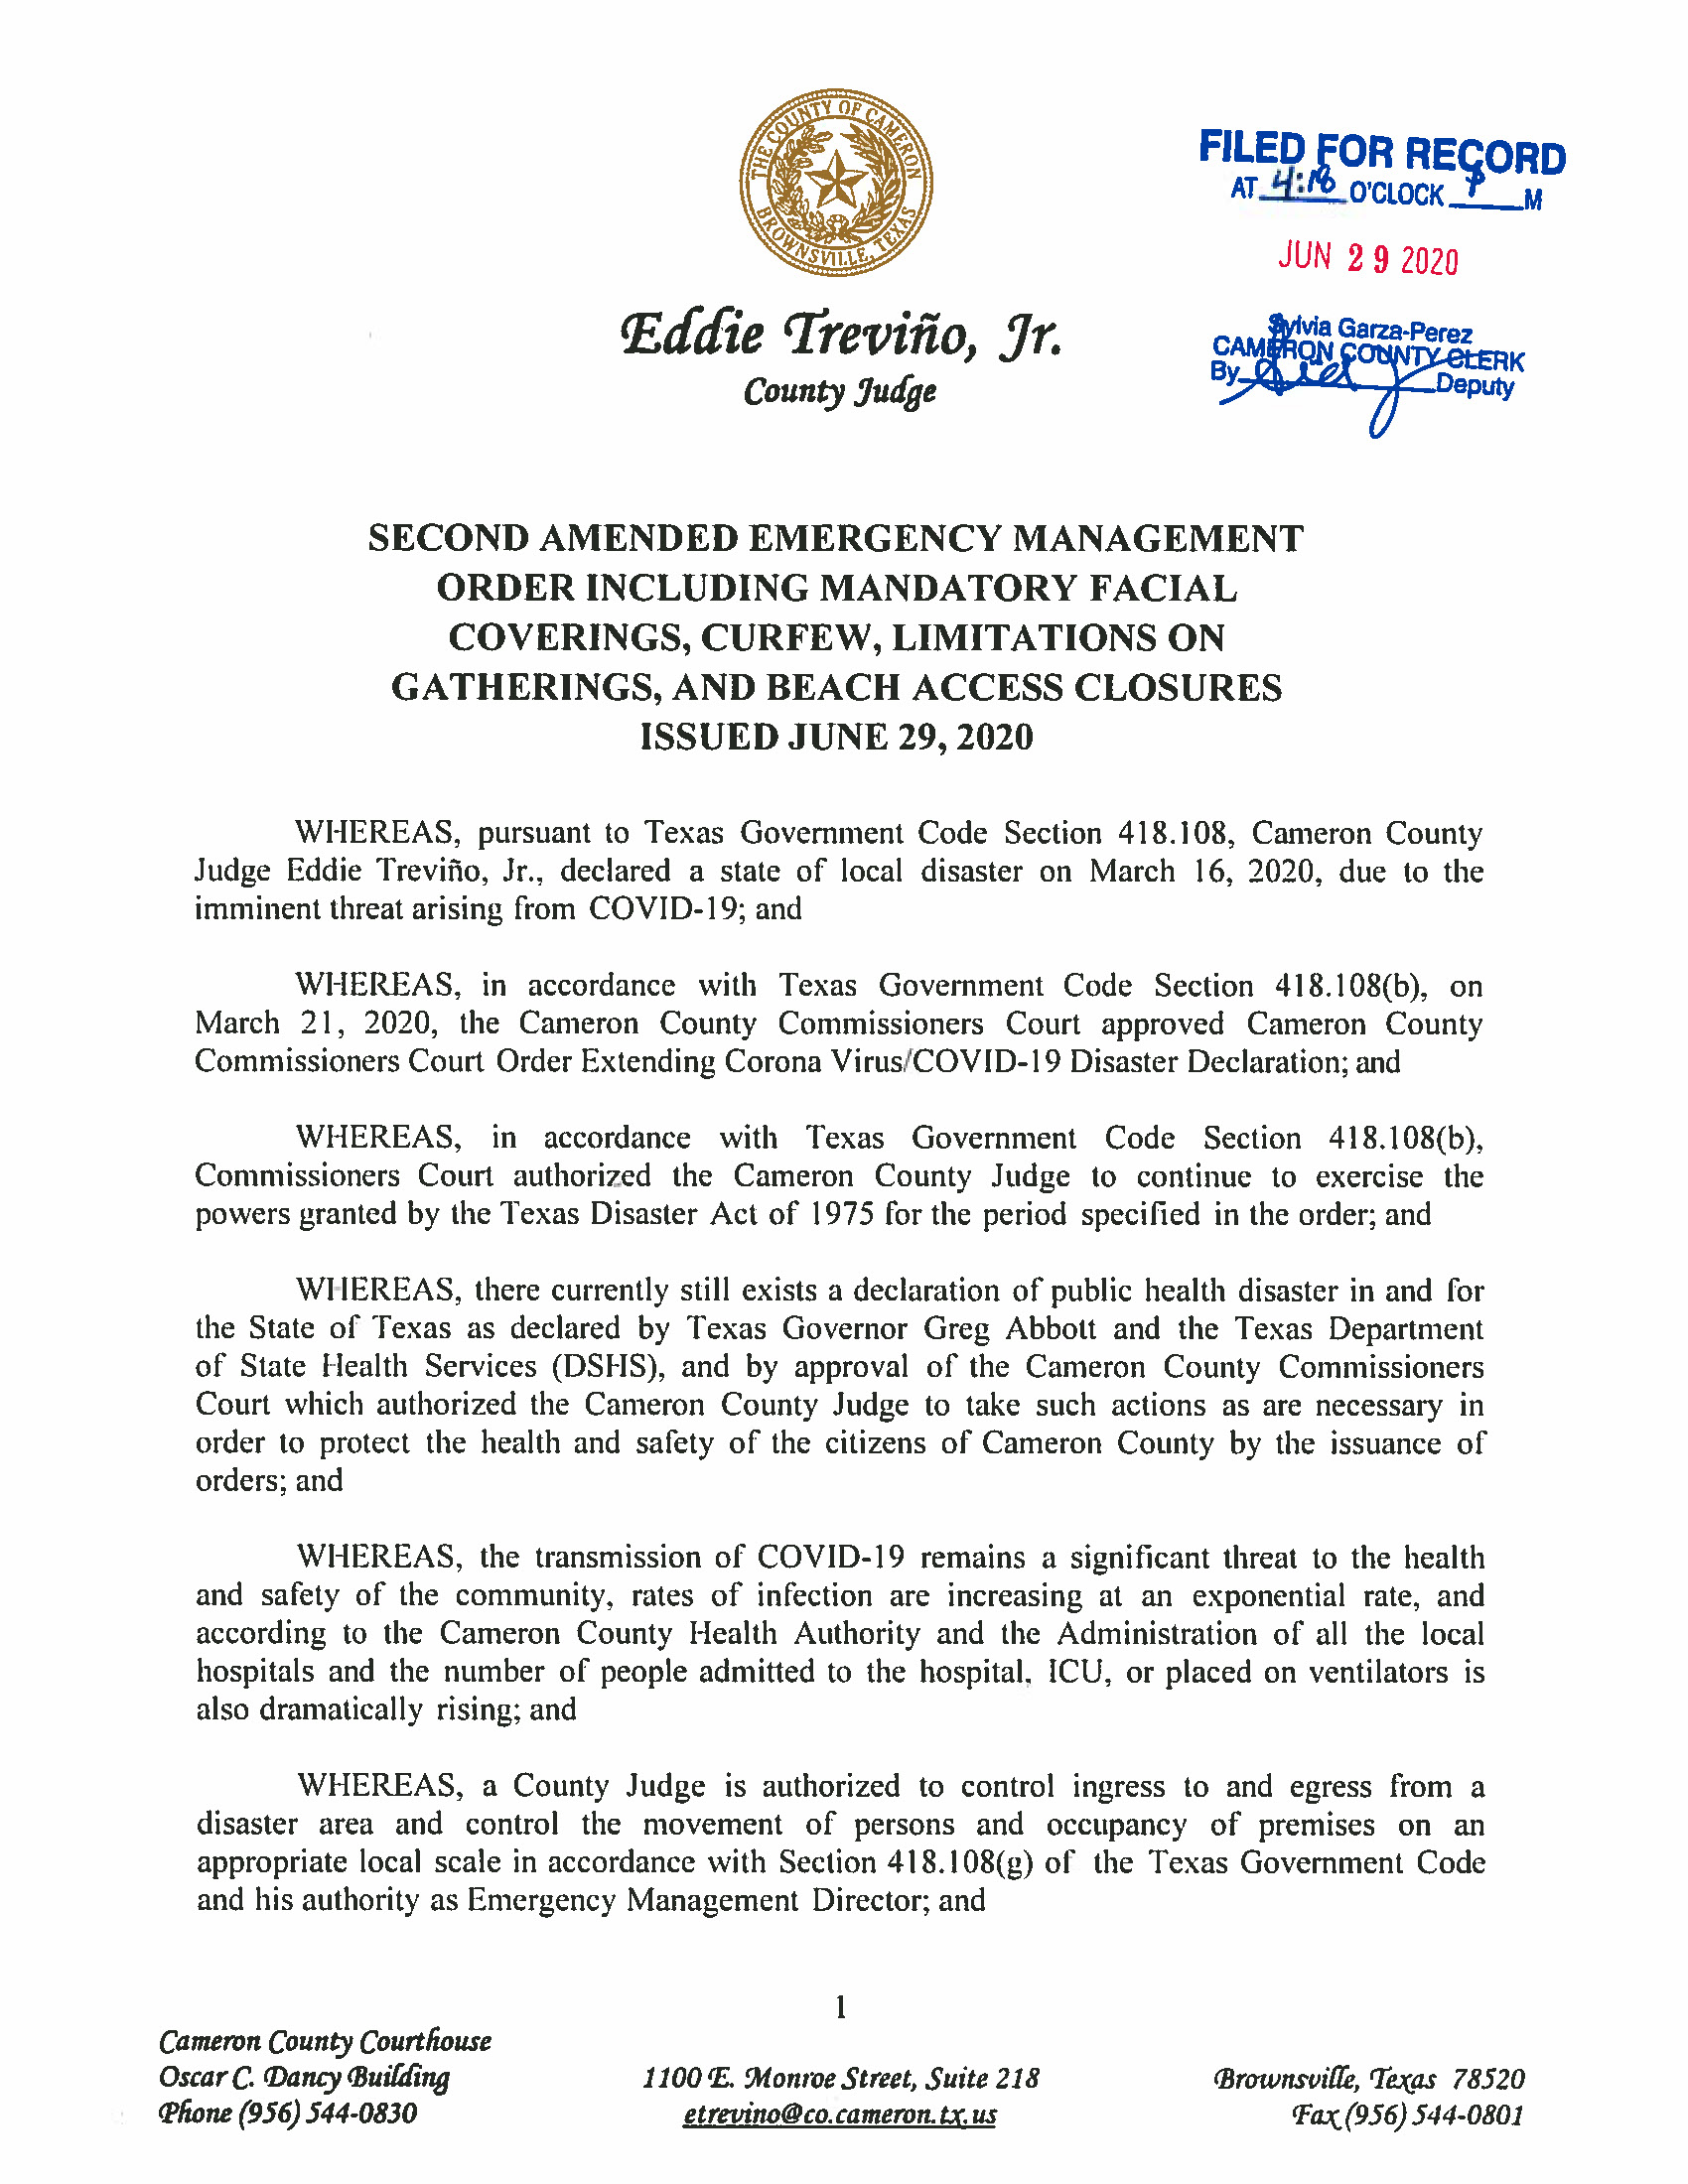 06.29.2020 ORDER Second Amended Emergency Management Order Including Mandatory Facial Coverings Curfew Limitations On Gatherings And Beach Access Closures Page 01